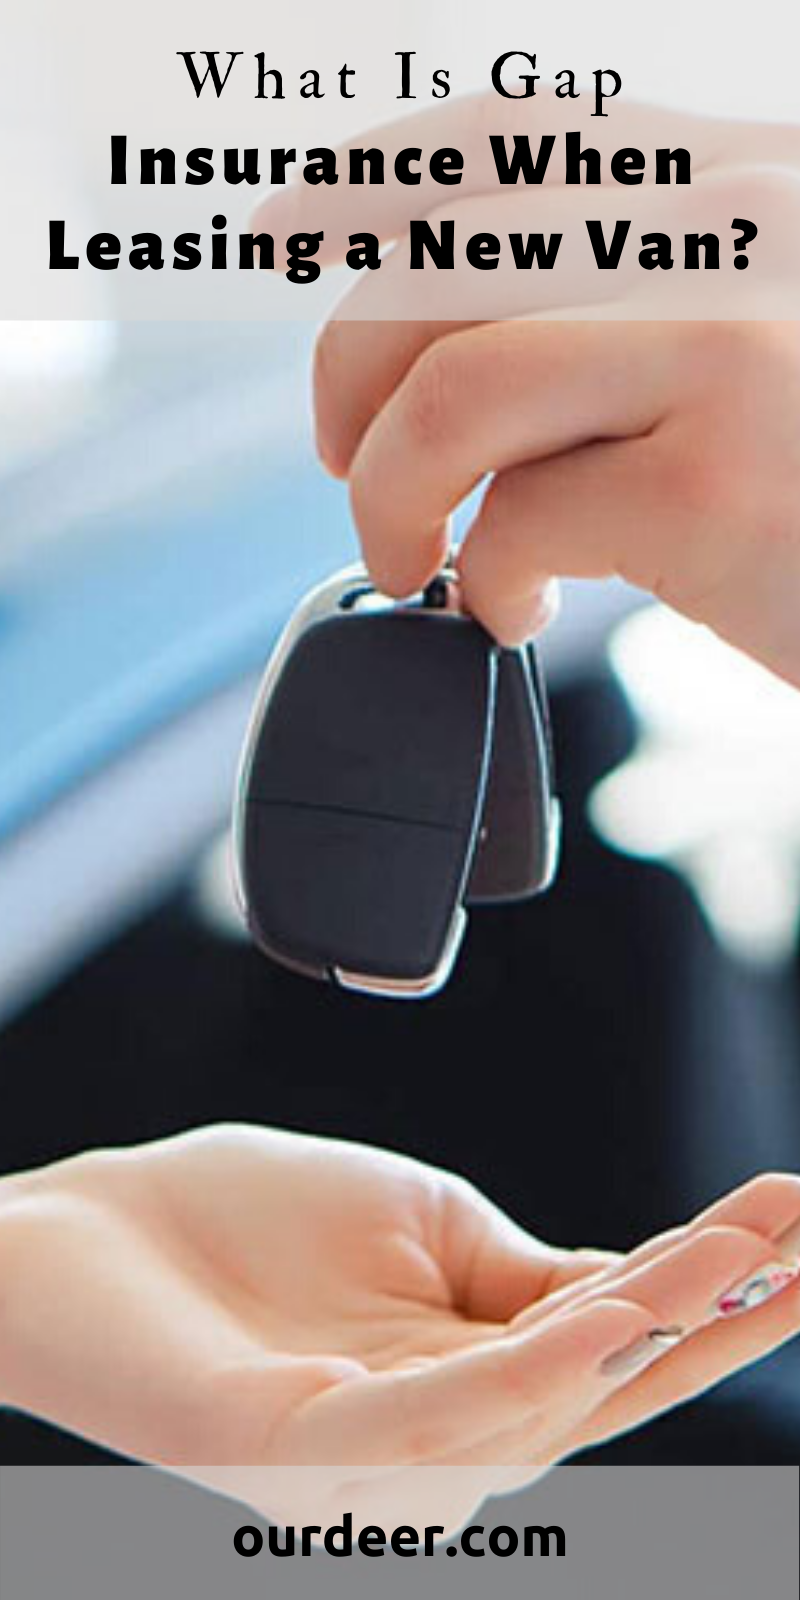 What Is Gap Insurance When Leasing a New Van? Car lease